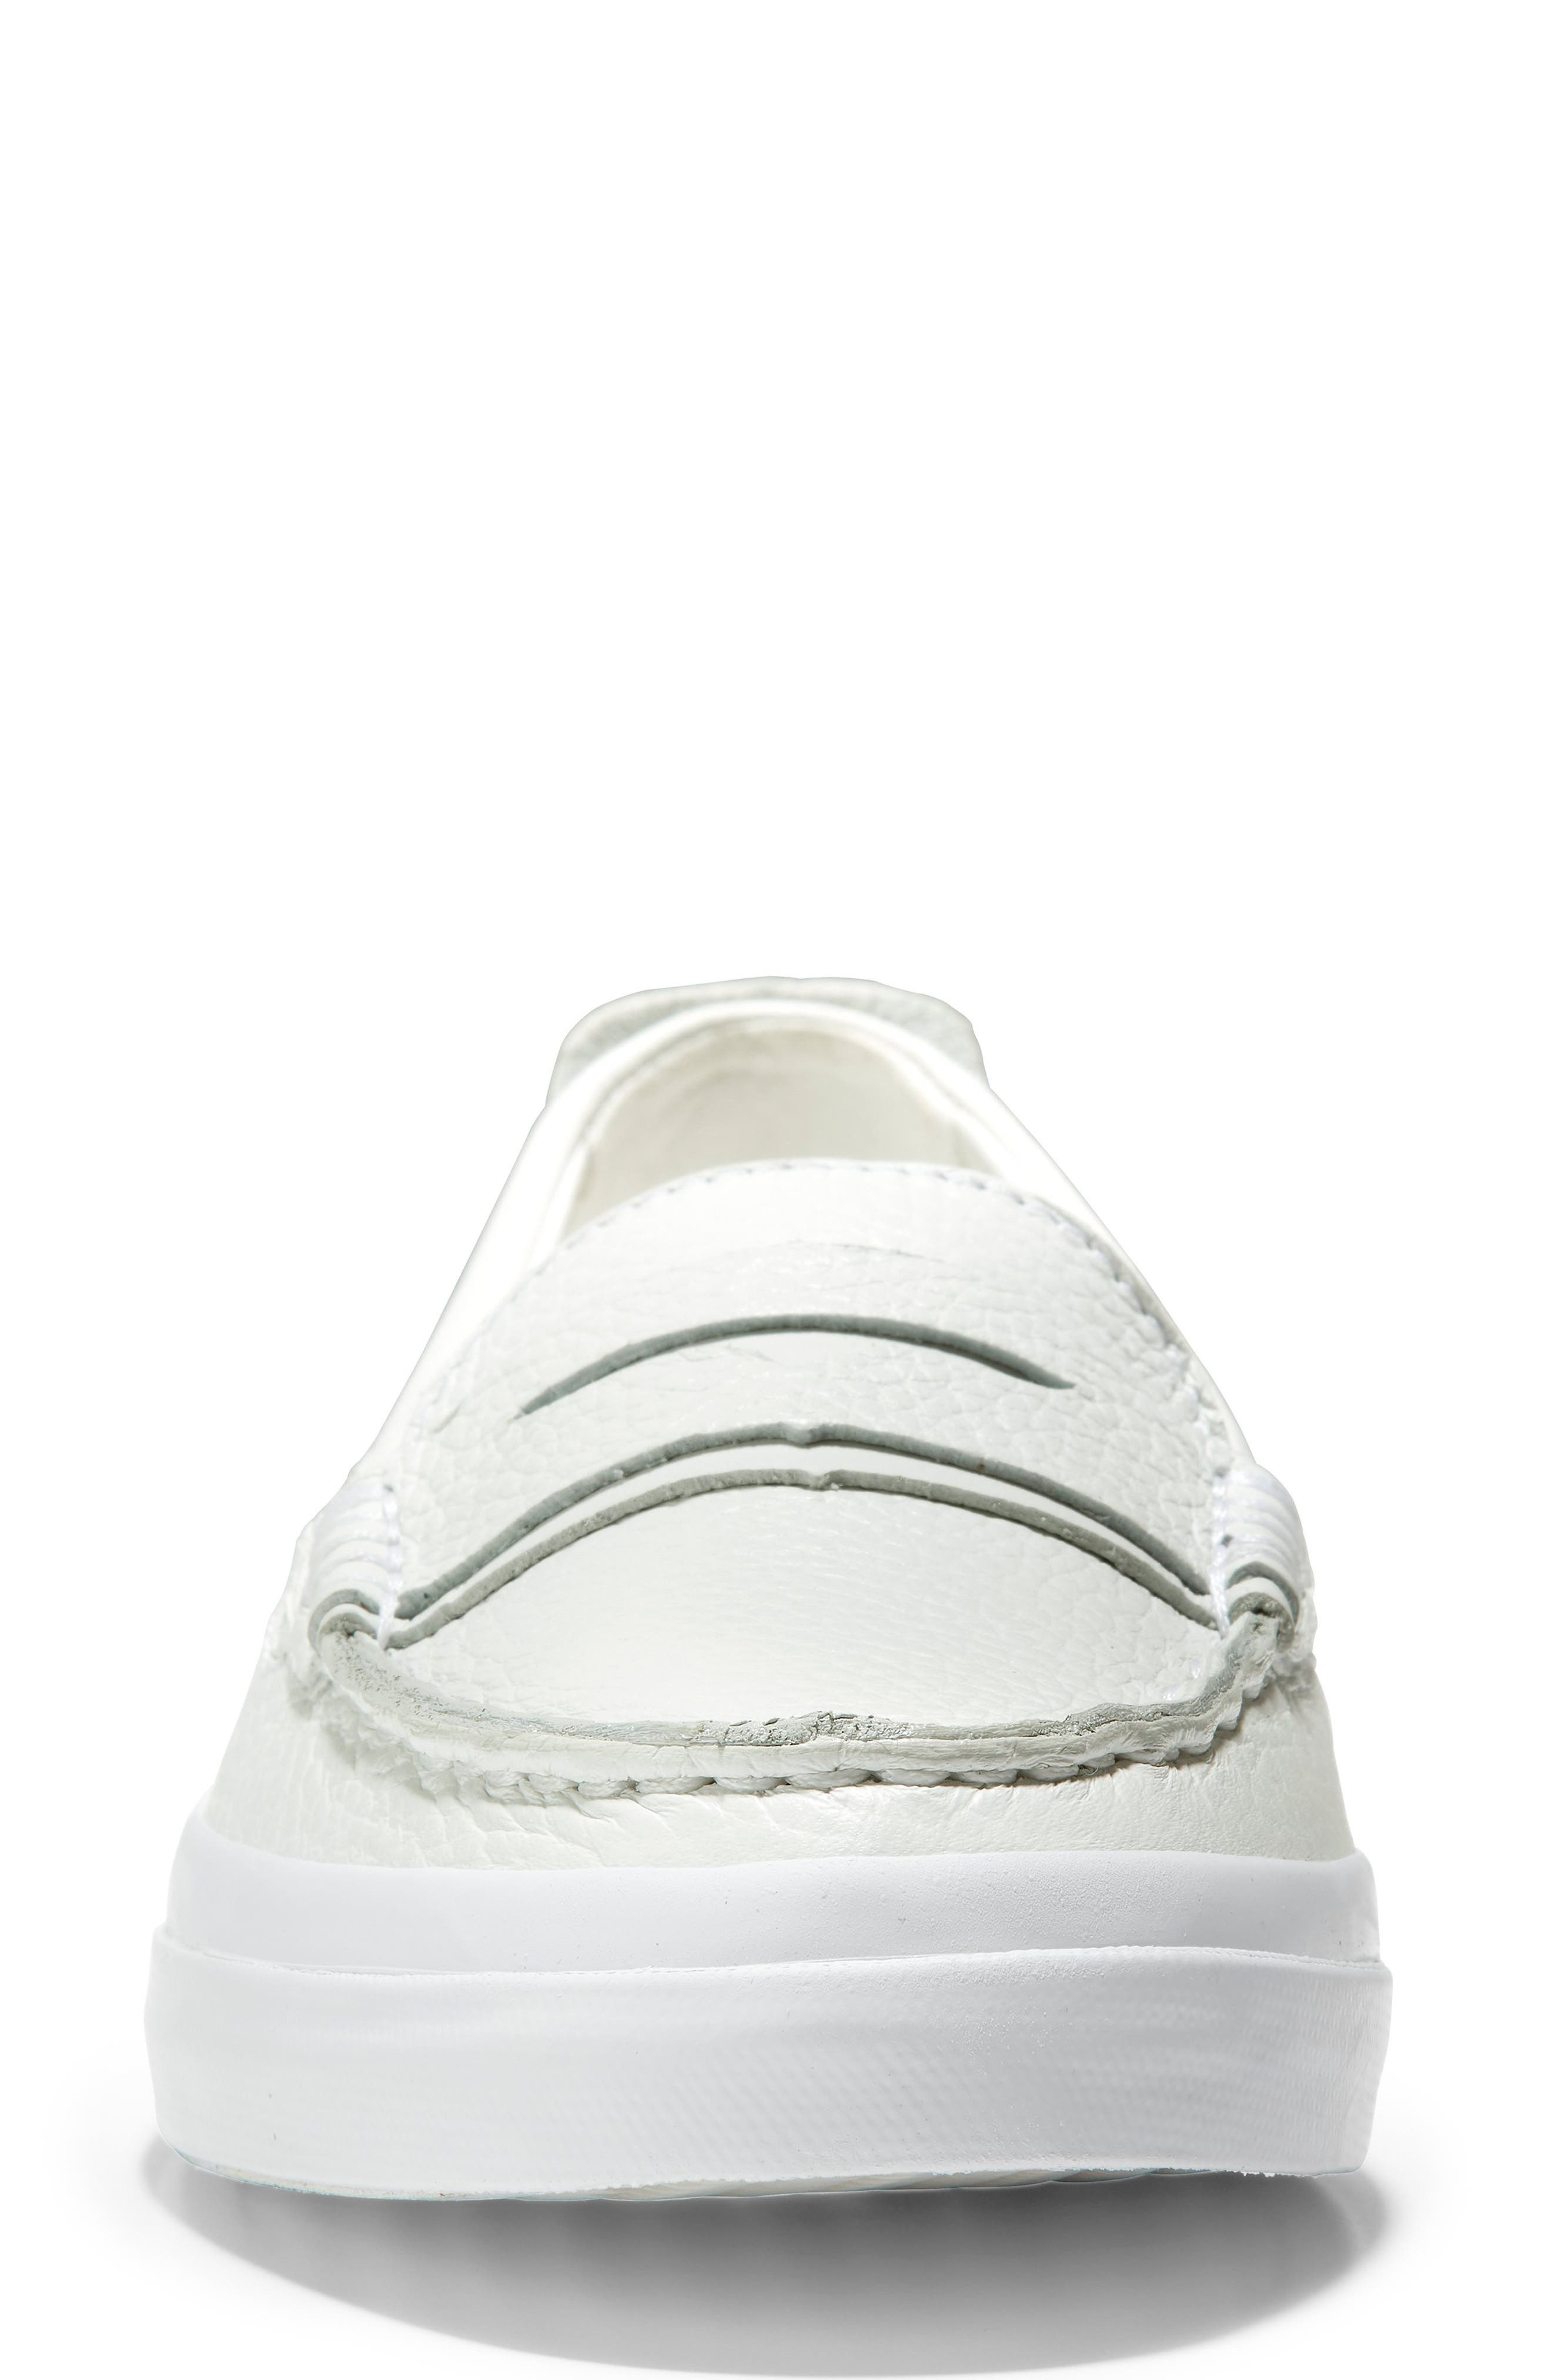 COLE HAAN, Pinch LX Loafer, Alternate thumbnail 4, color, OPTIC WHITE LEATHER